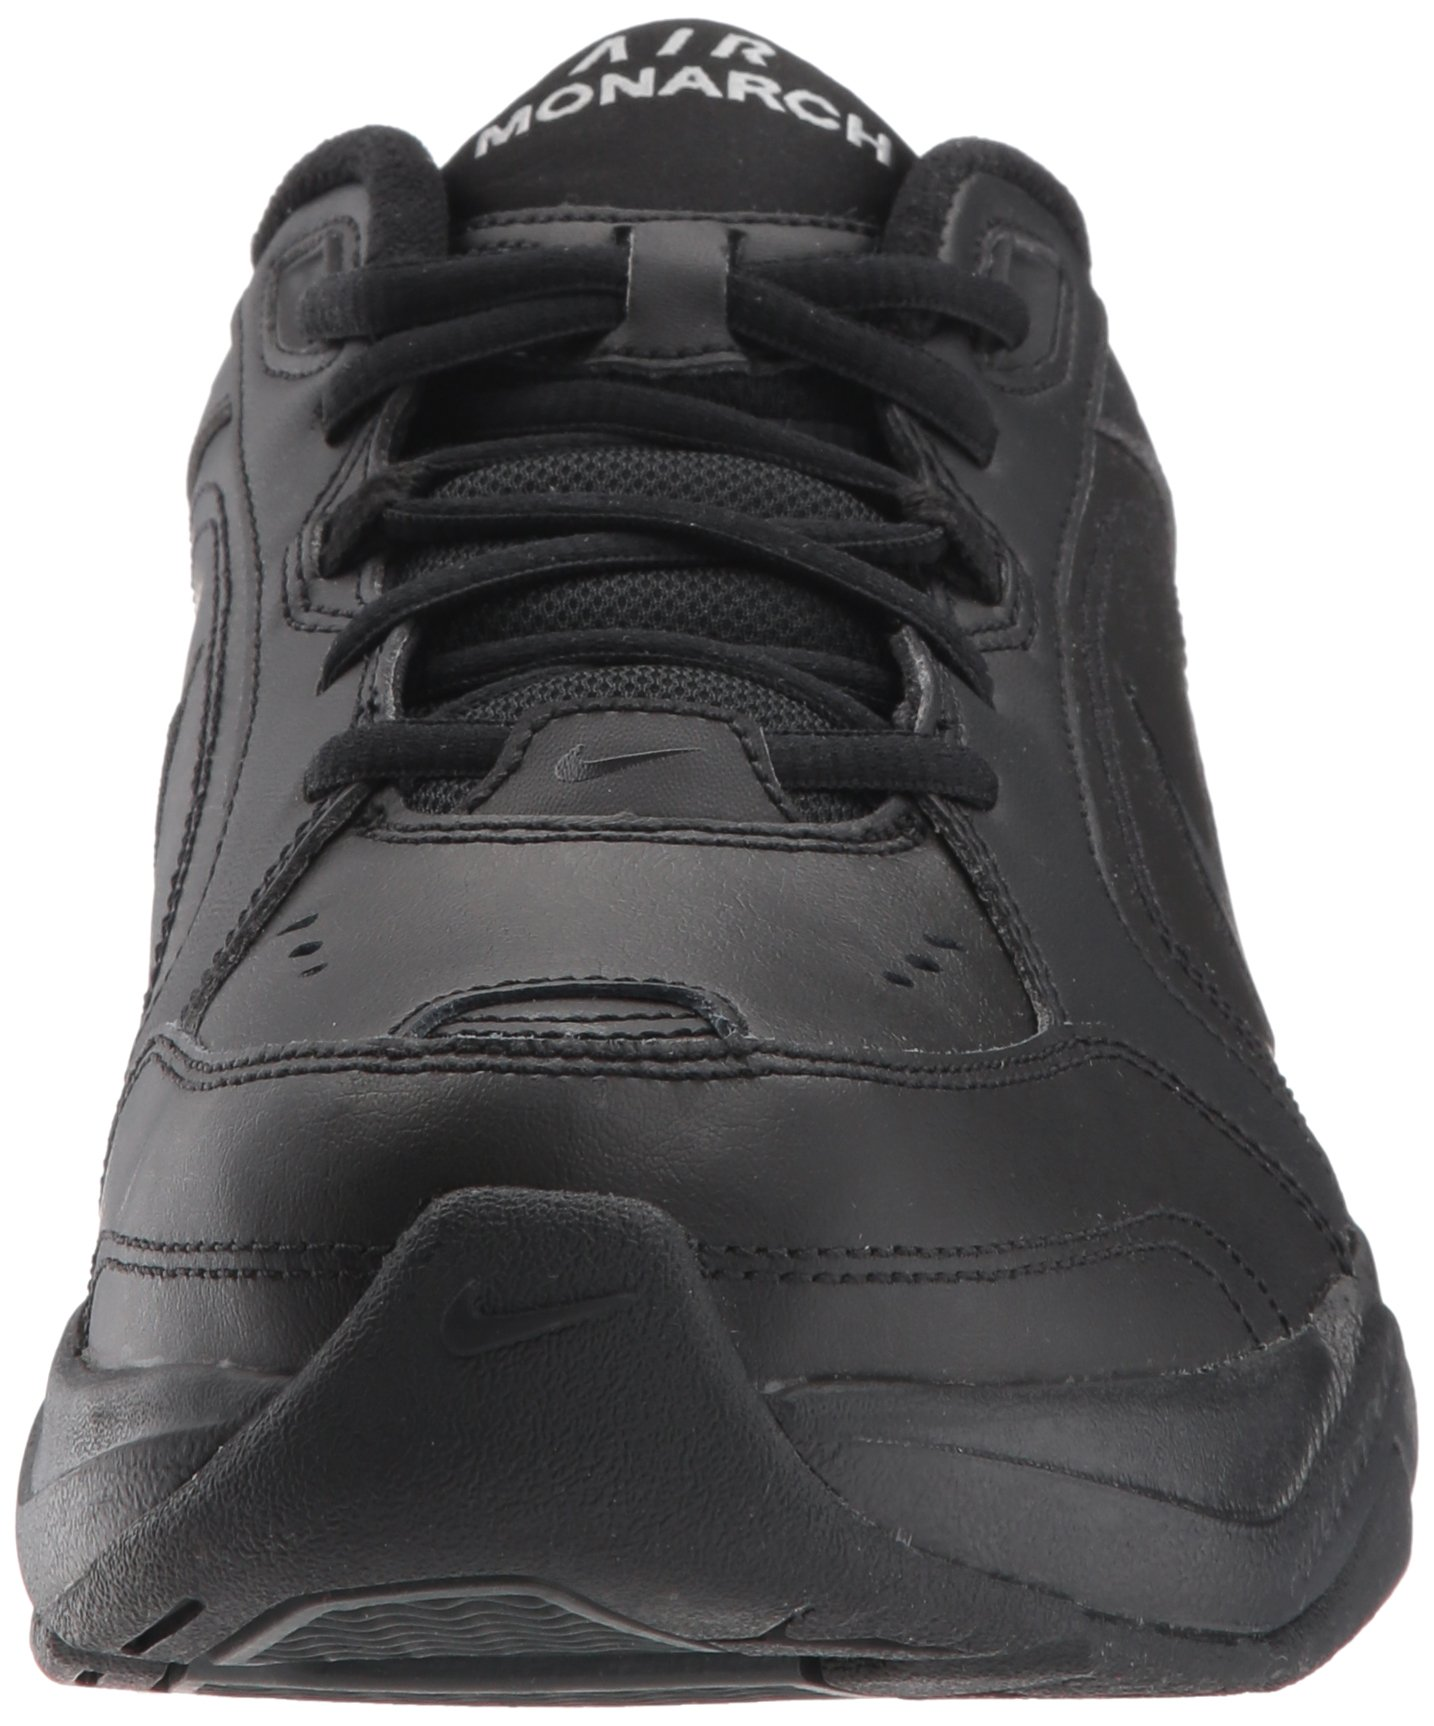 NIKE AIR MONARCH IV (MENS) - 6 Black/Black by Nike (Image #4)